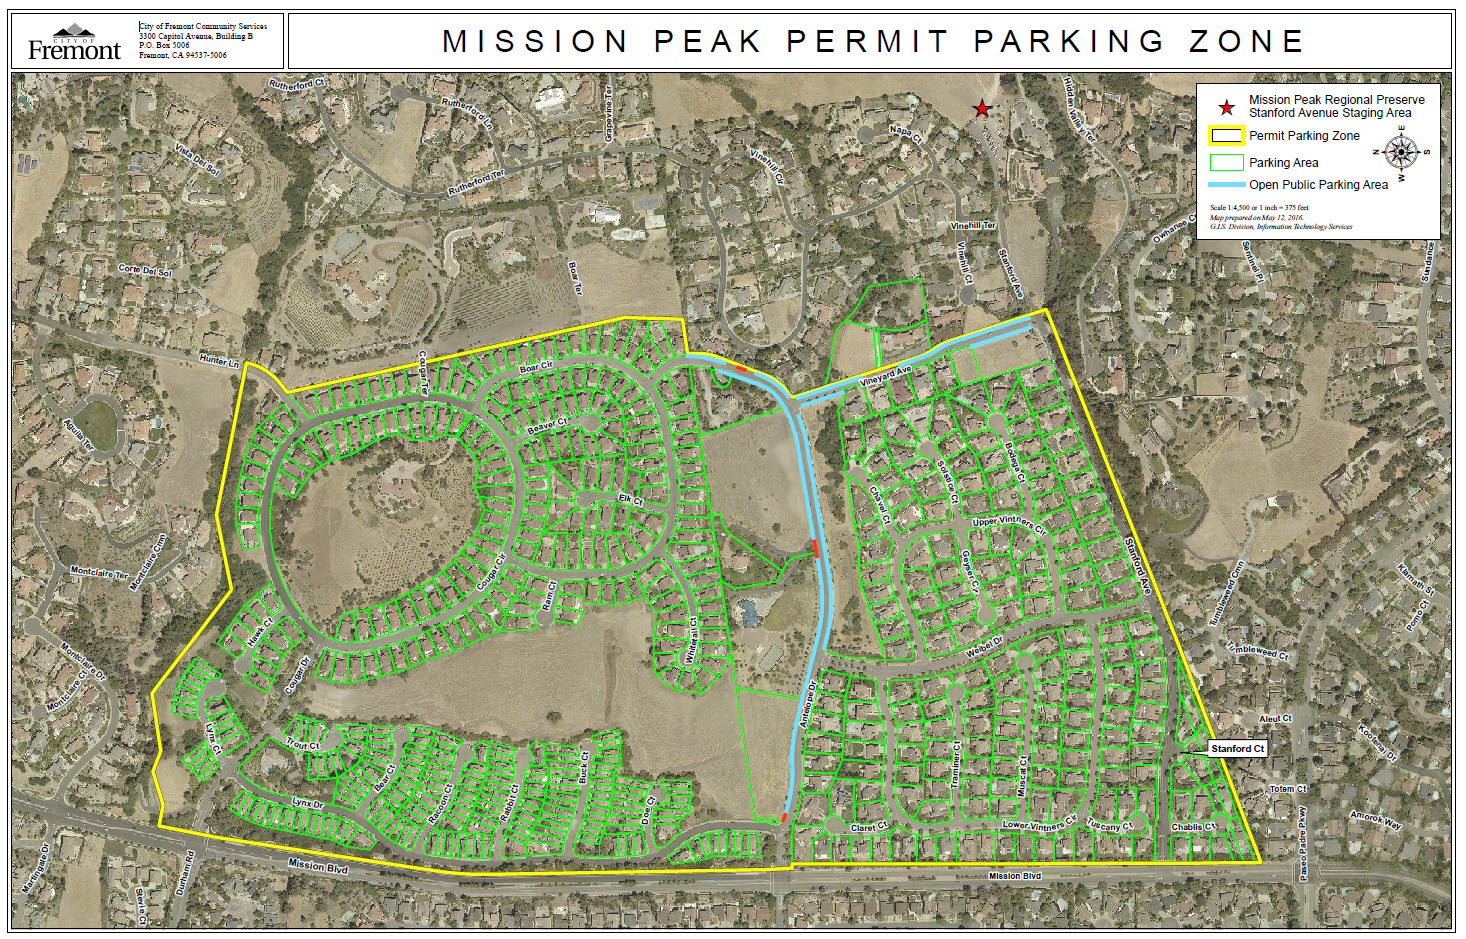 Map of Mission Peak Parking Permit Zone